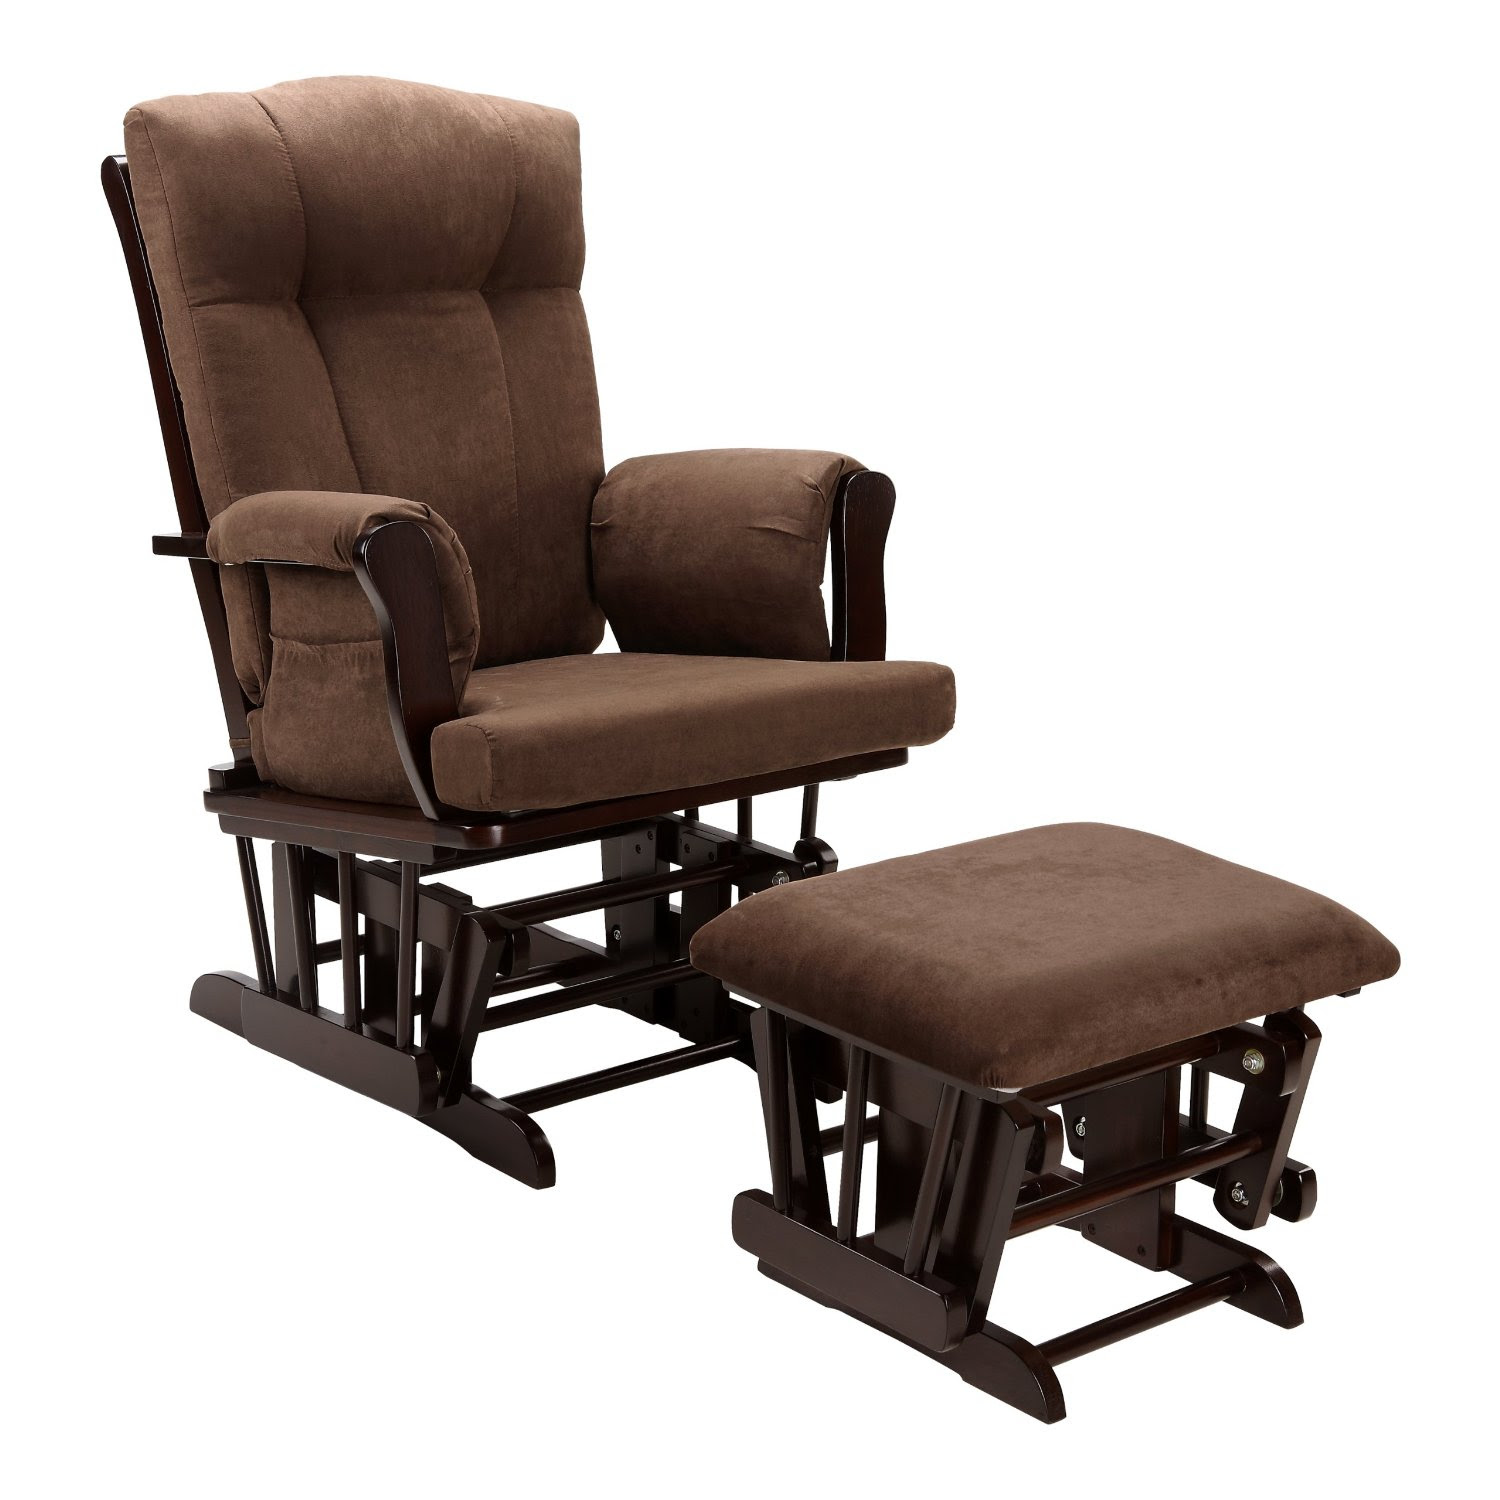 Wooden Base Of Reading Chair With Ottoman